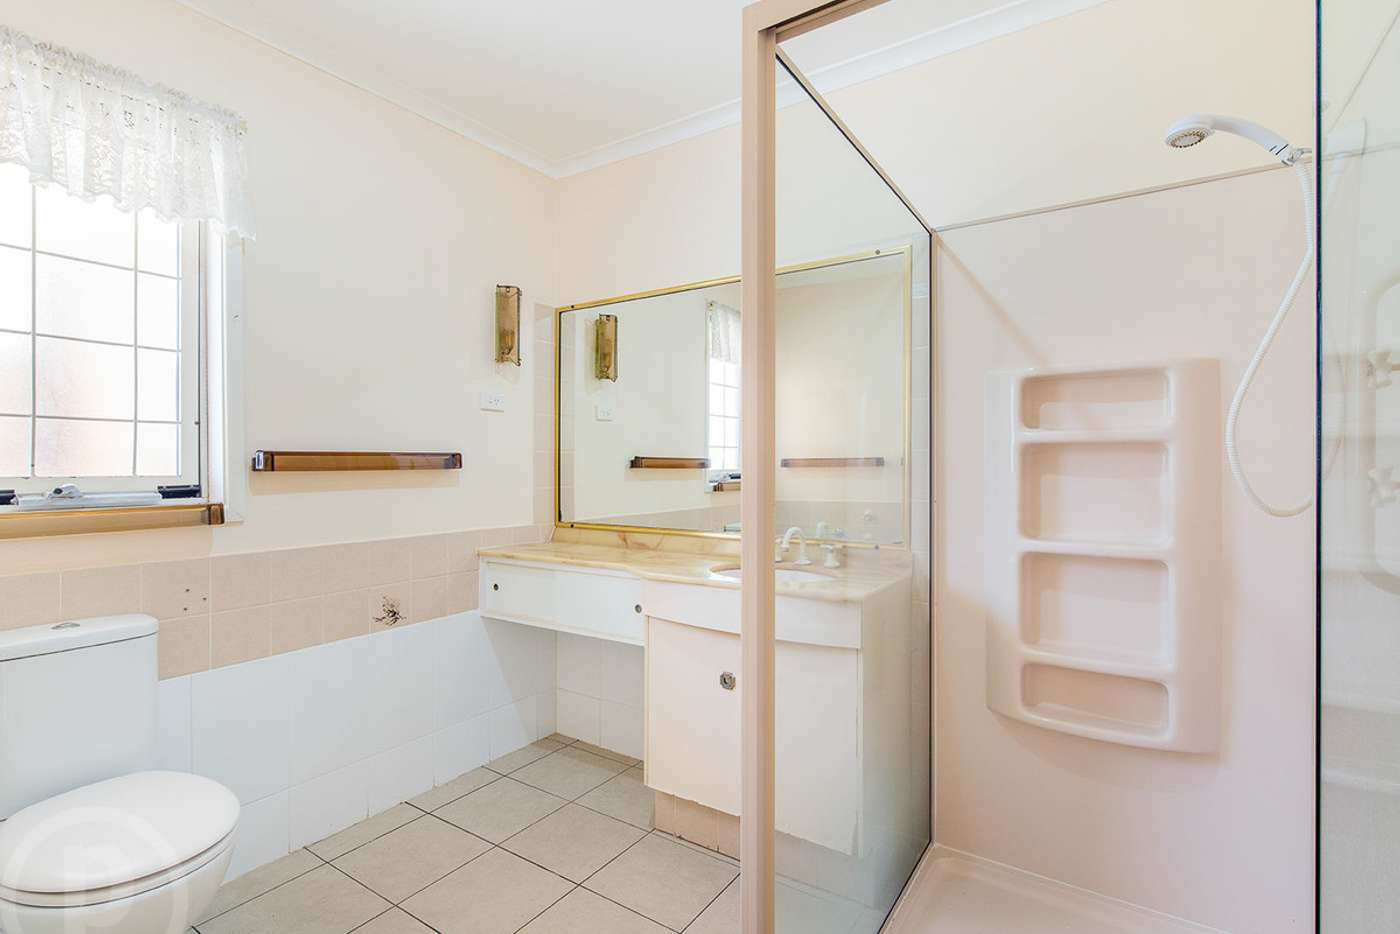 Sixth view of Homely house listing, 6 Arcoona Street, Sunnybank QLD 4109